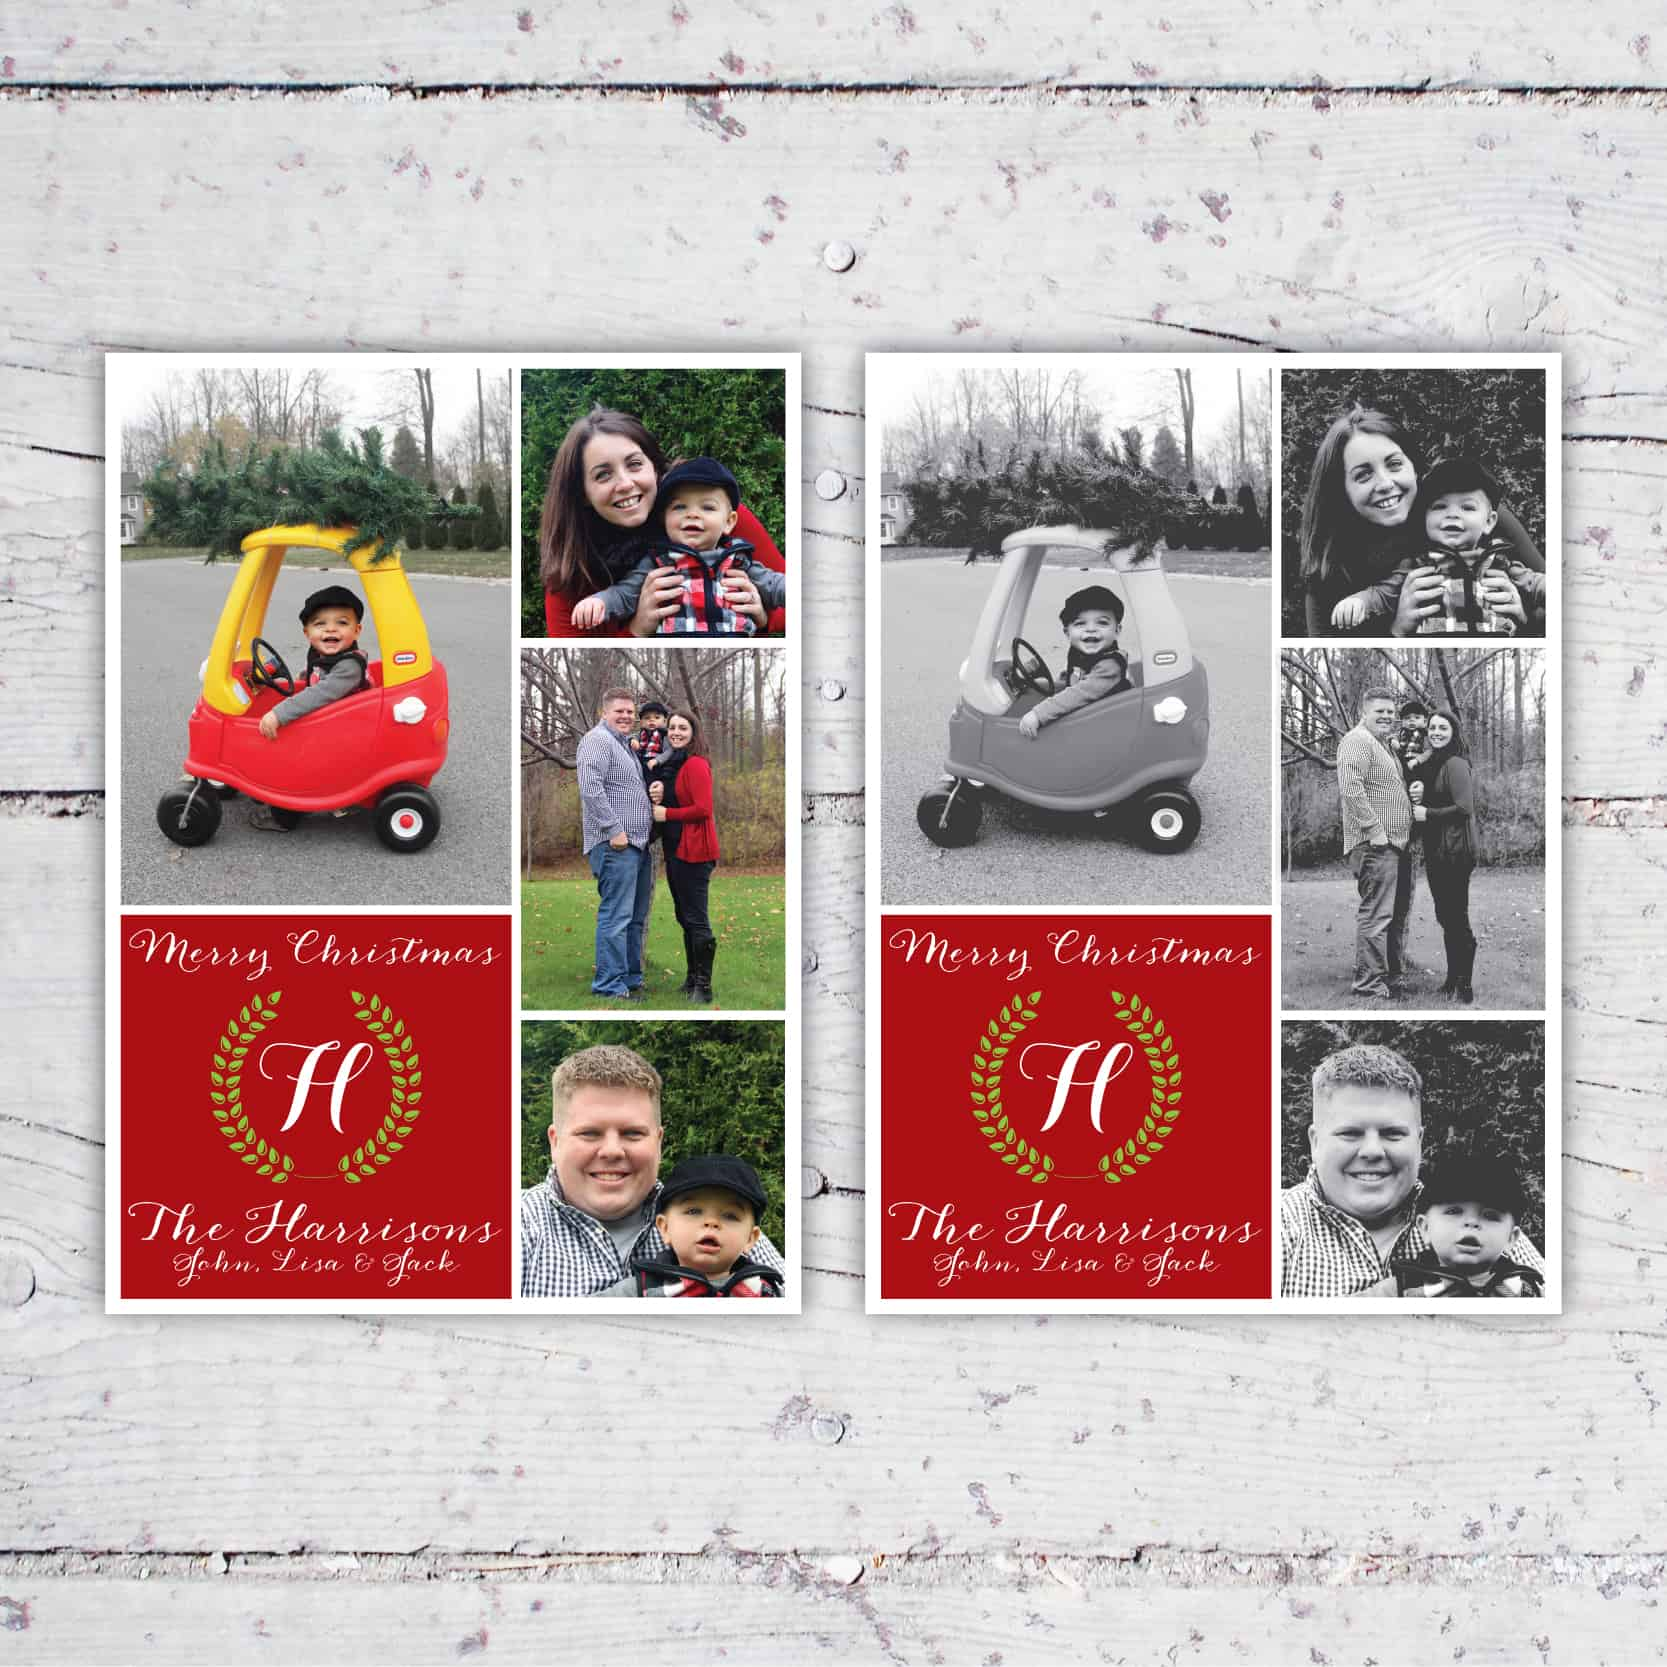 Christmas Wreath Family Photo Collage Christmas Card or Holiday Card | 5x7 | Digital Download | Printable | Christmas Wreath Holiday Card